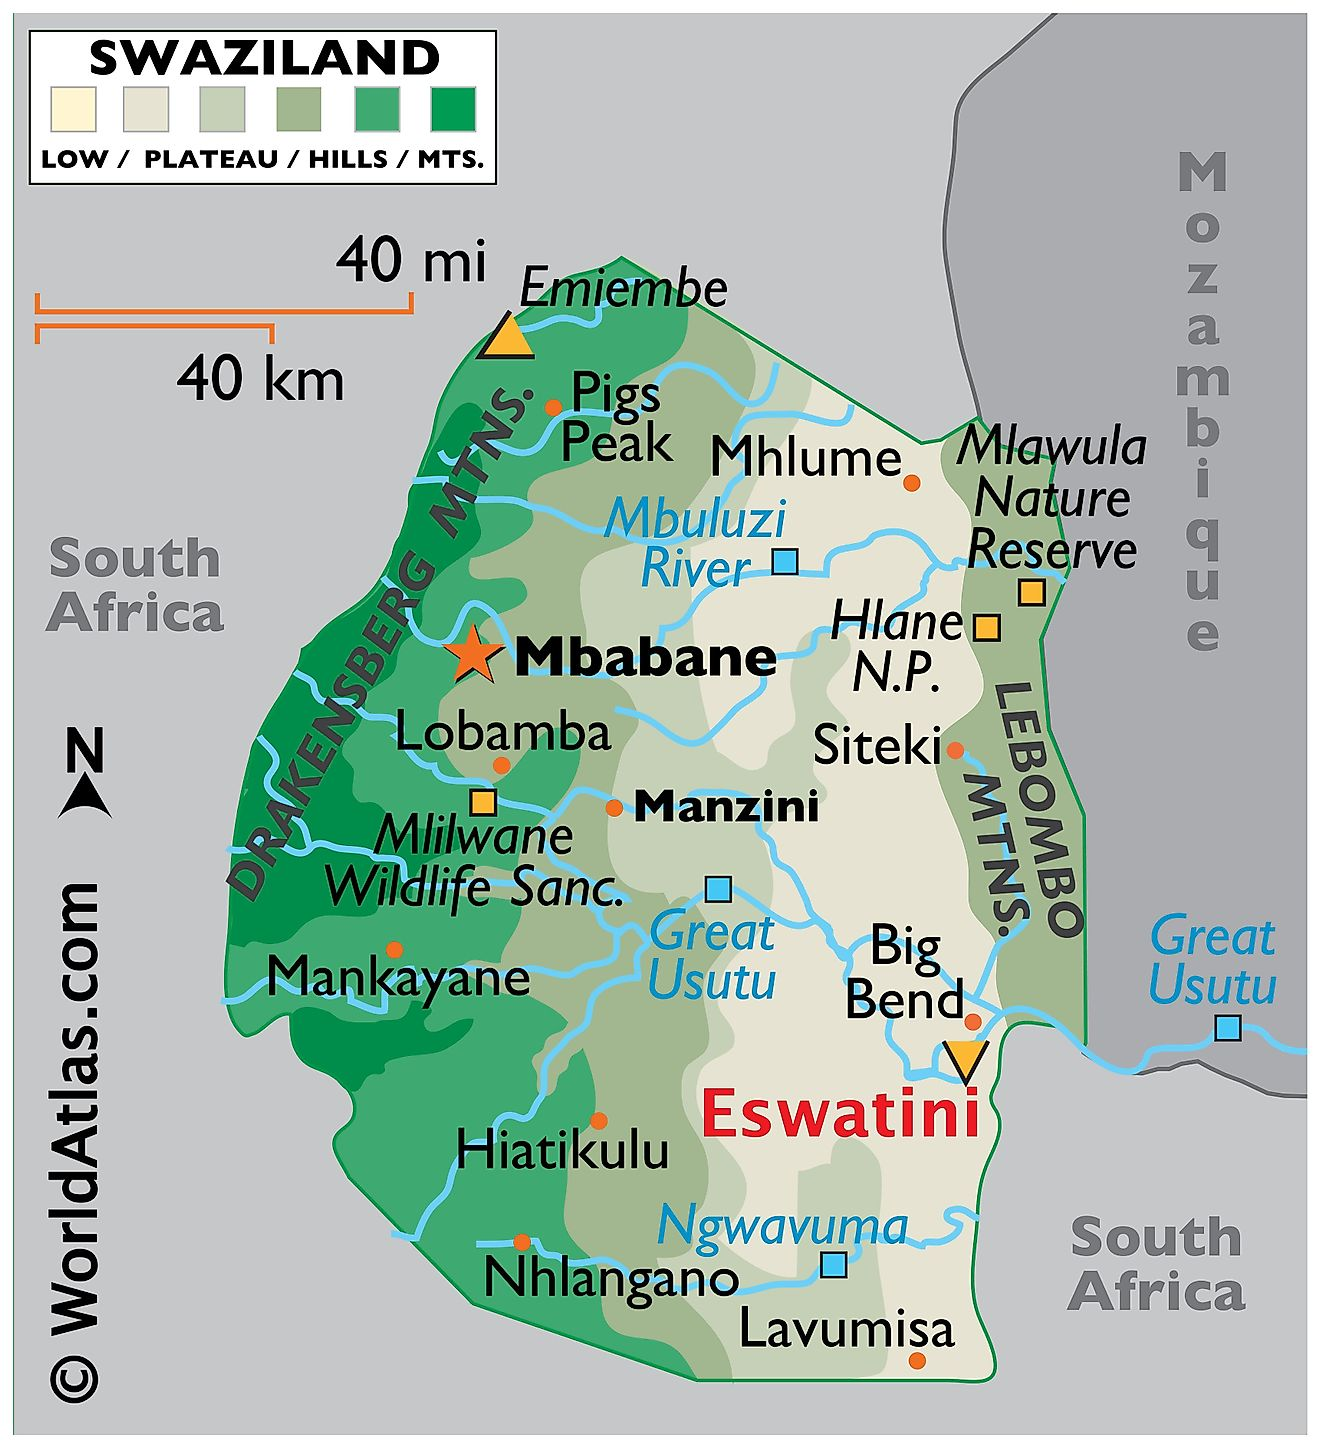 Physical Map of the Eswatini With State Boundaries. It shows the major physical features of Eswatini including mountain ranges, rivers, and lakes.